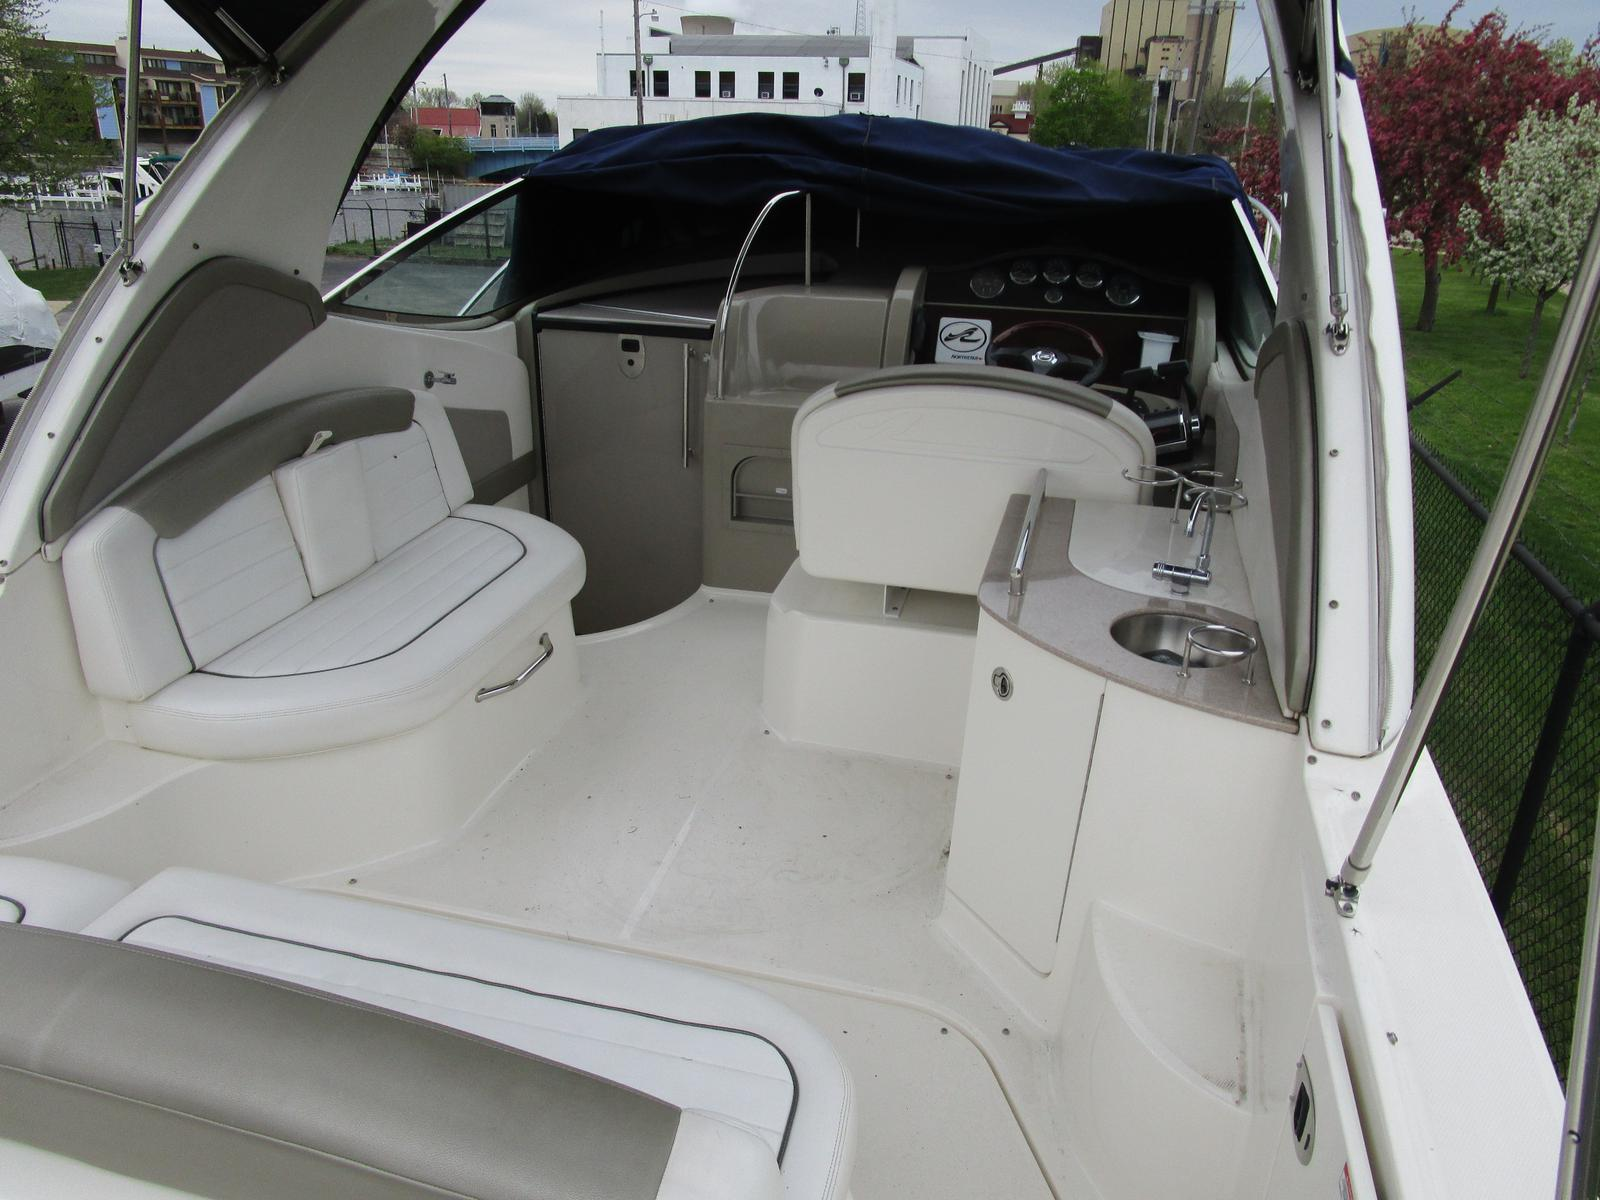 2007 Sea Ray boat for sale, model of the boat is 290 Sundancer & Image # 4 of 10